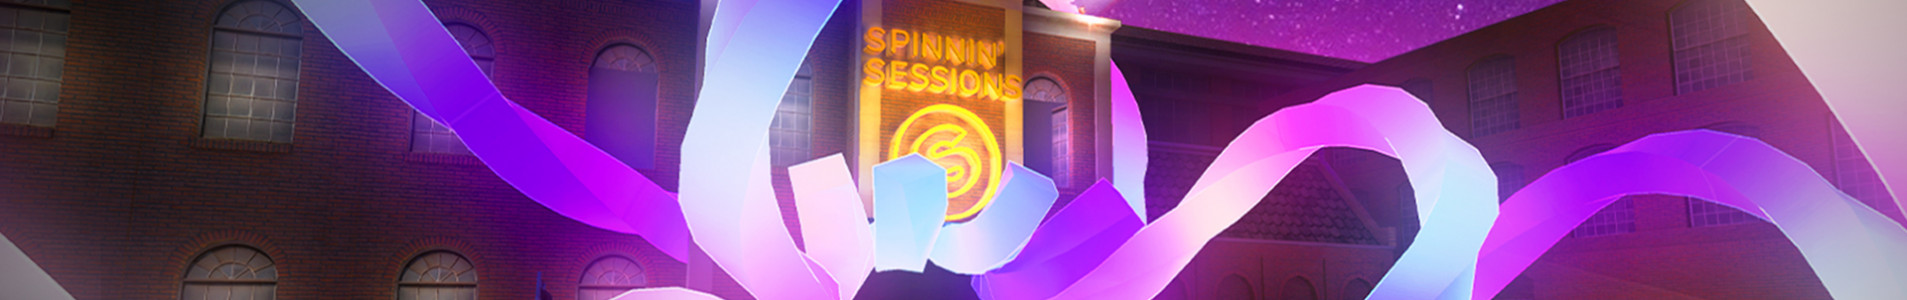 Spinnin' Records and Avakin Life team up to bring you virtual Spinnin' Sessions!